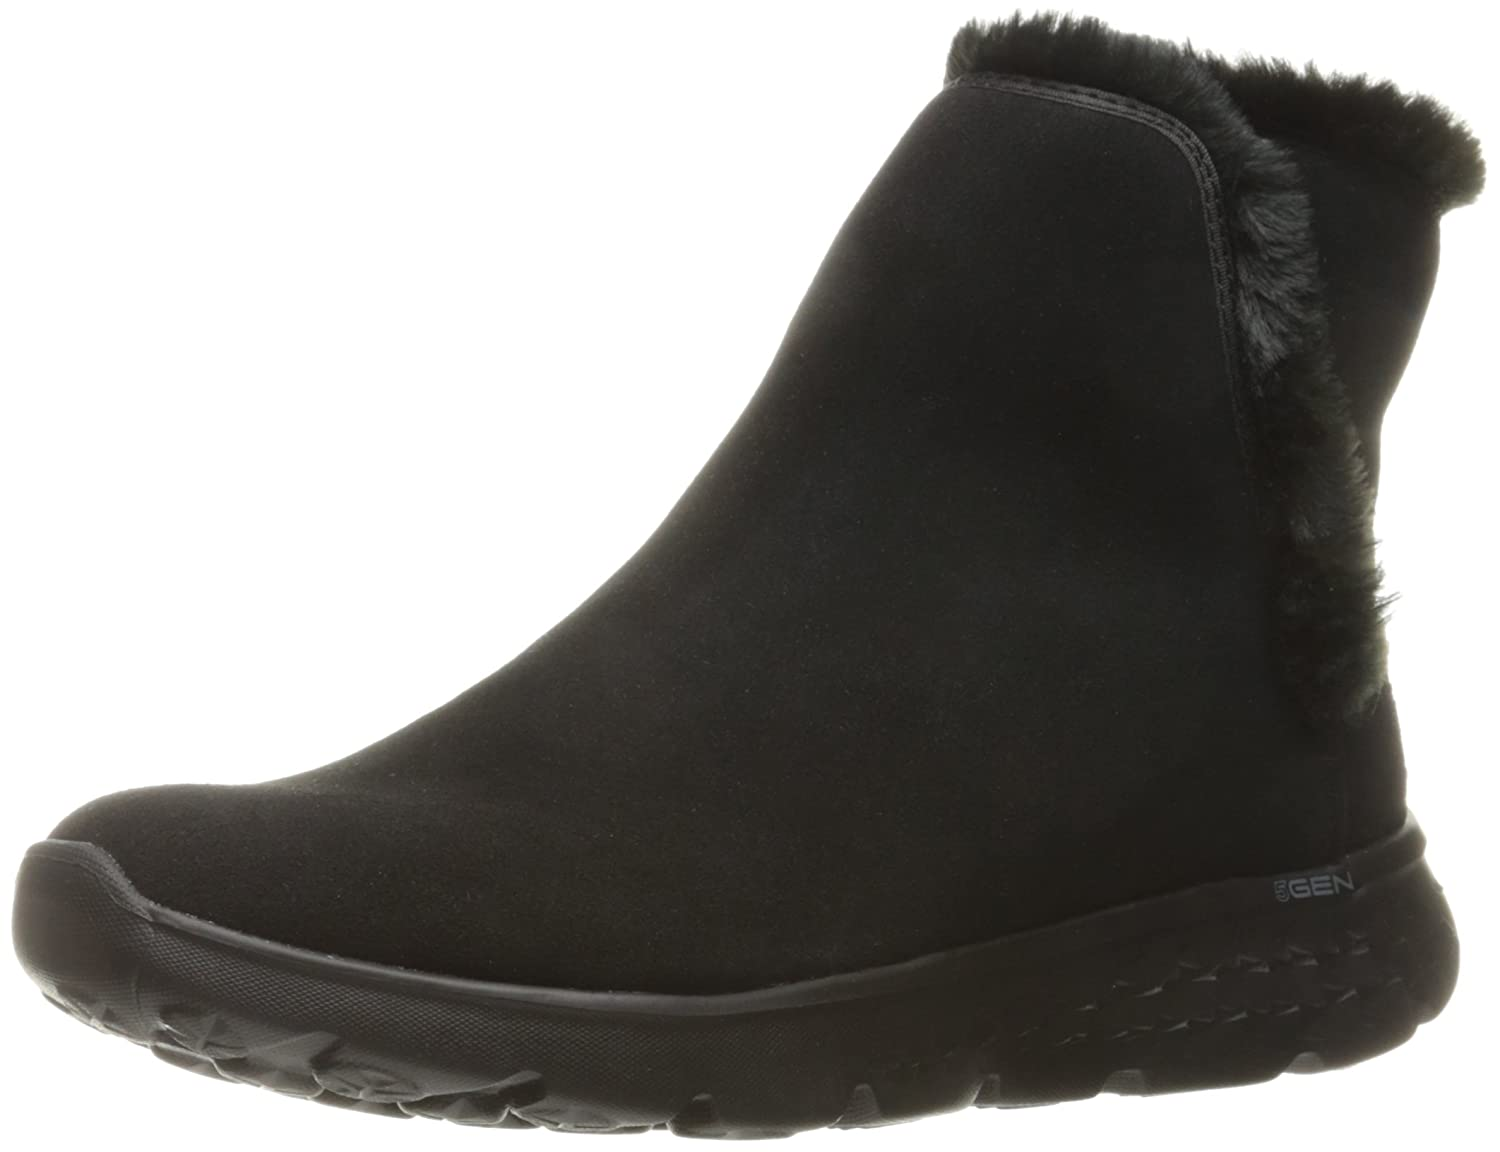 Skechers Performance Women's On The Go 400 Blaze Winter Boot B01B4MQAY2 8.5 B(M) US|Black